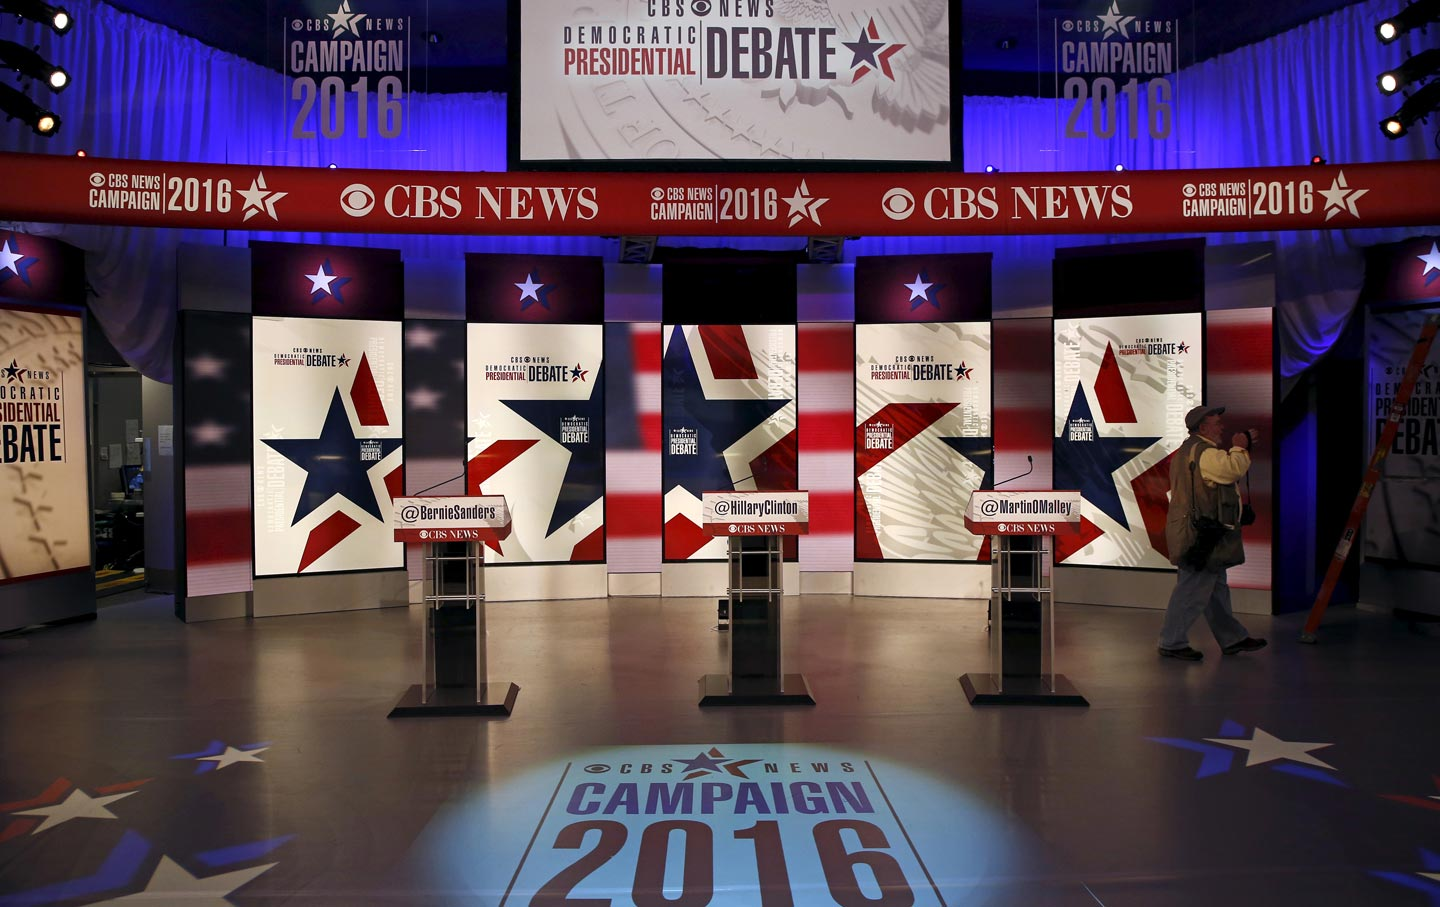 Des Moines Democratic debate